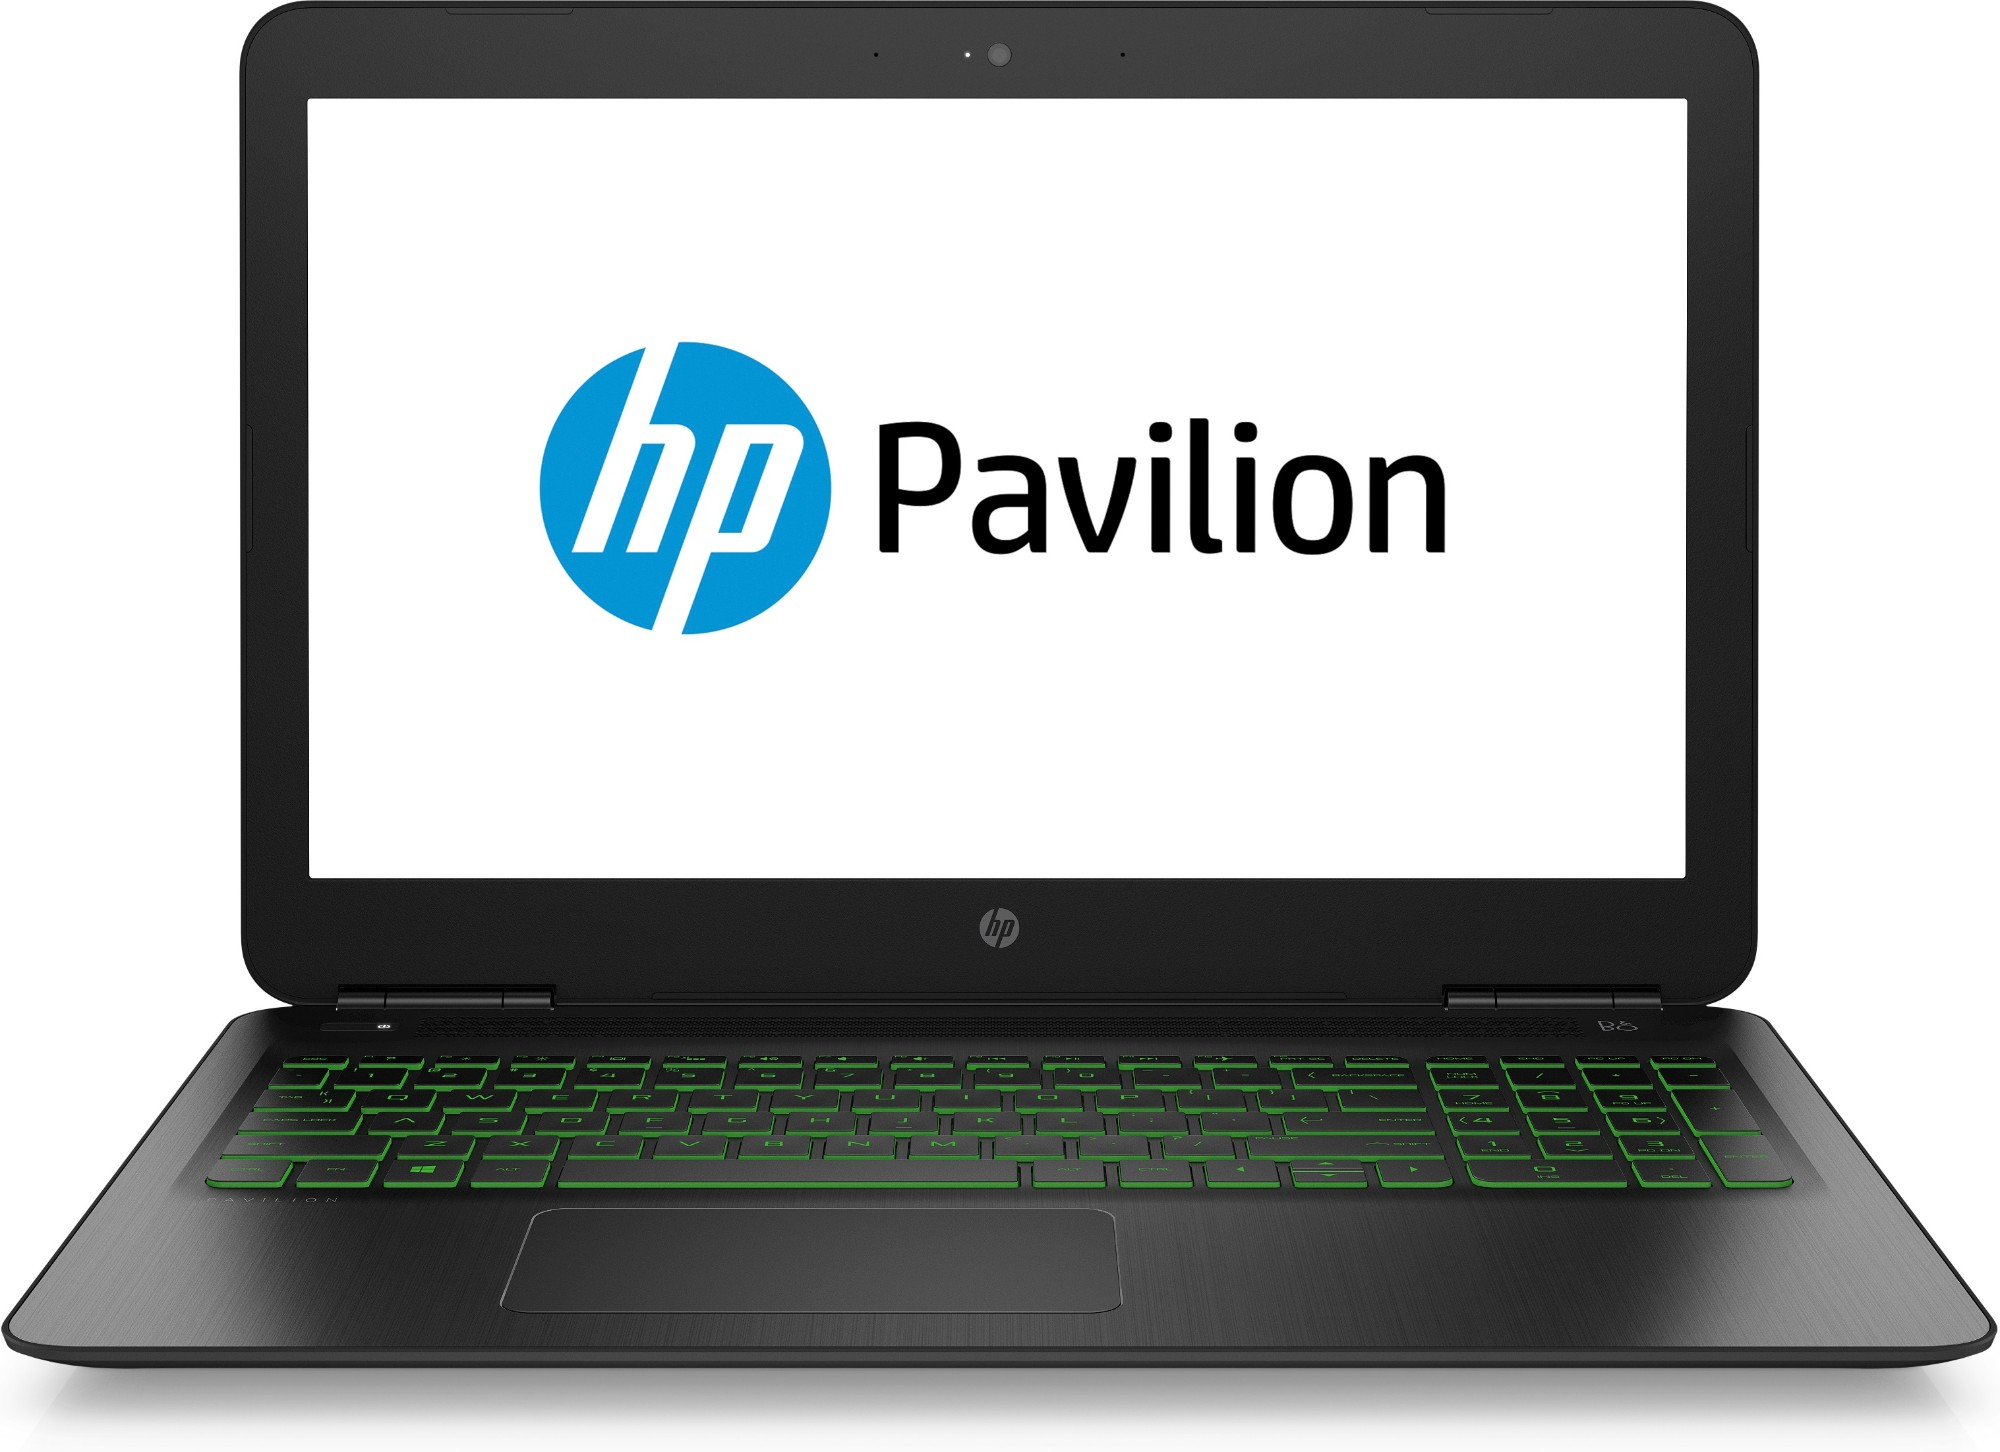 "HP Pavilion 15-dp0003na Black,Green Notebook 39.6 cm (15.6"") 1920 x 1080 pixels 8th gen Intel® Core™ i7 i7-8750H 8 GB DDR4-SDRAM 1128 GB HDD+SSD"